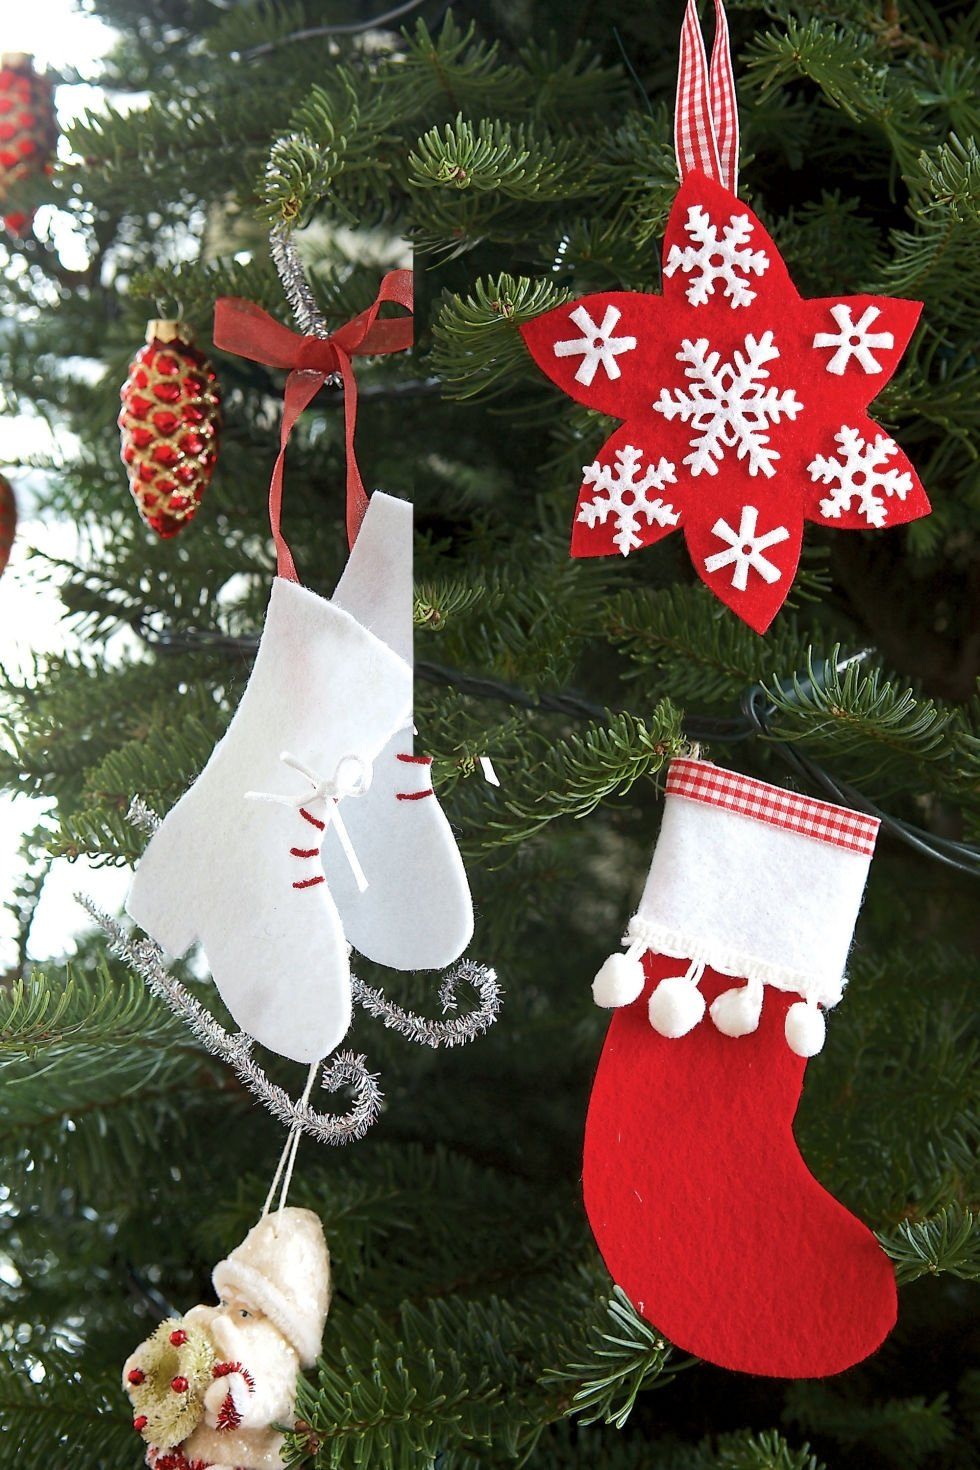 10 Cute Christmas Decorations Ideas To Make easy diy christmas decorations littlebubble